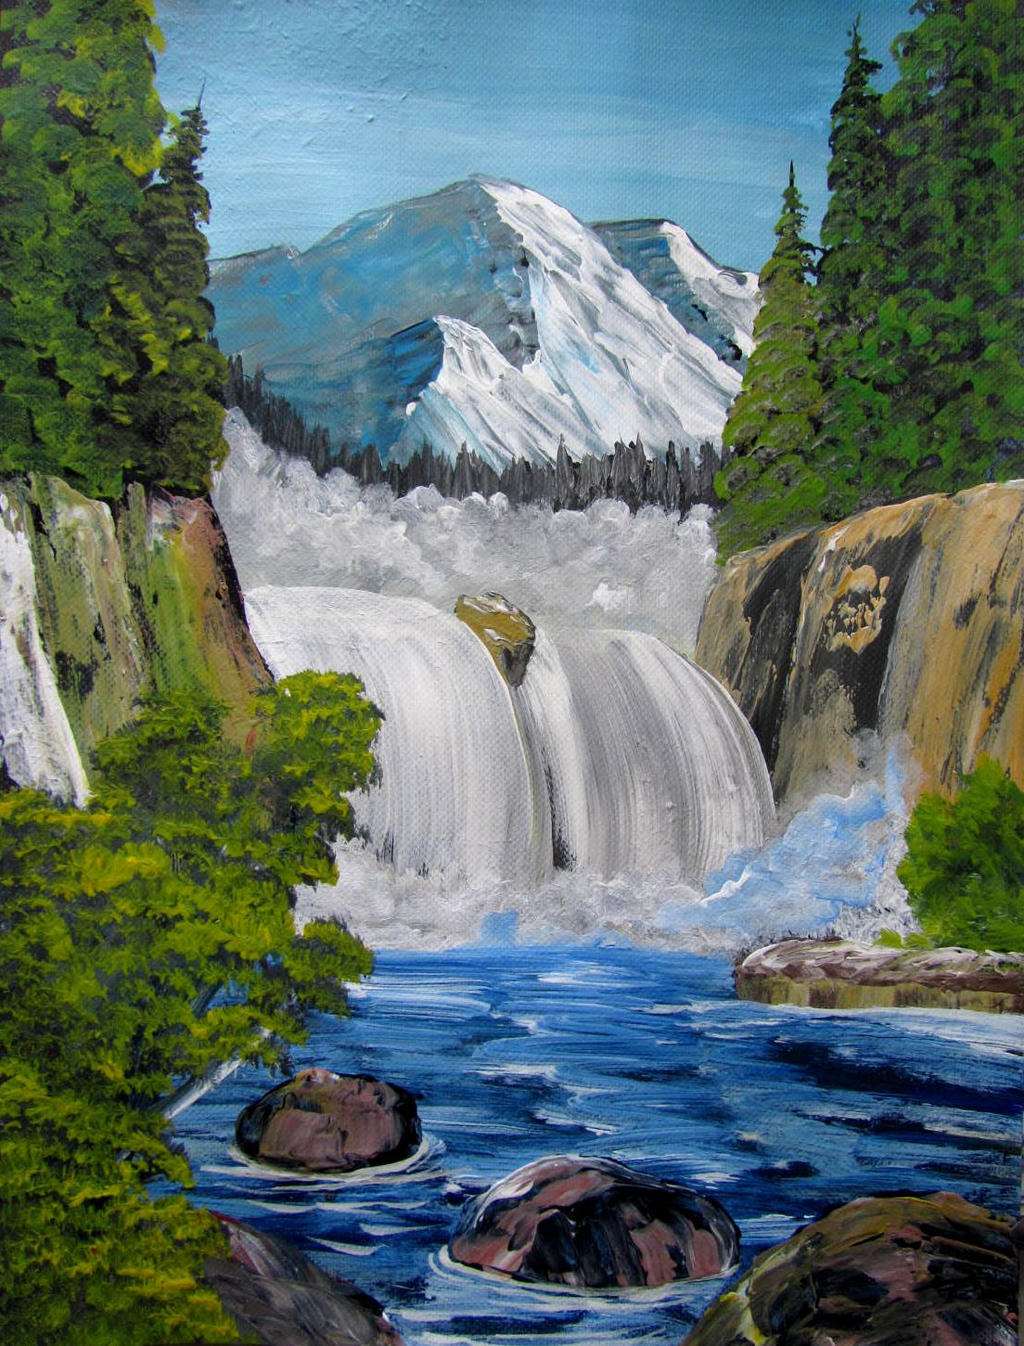 573 Spectacular Waterfall (Bob Ross) by mengenstrom on